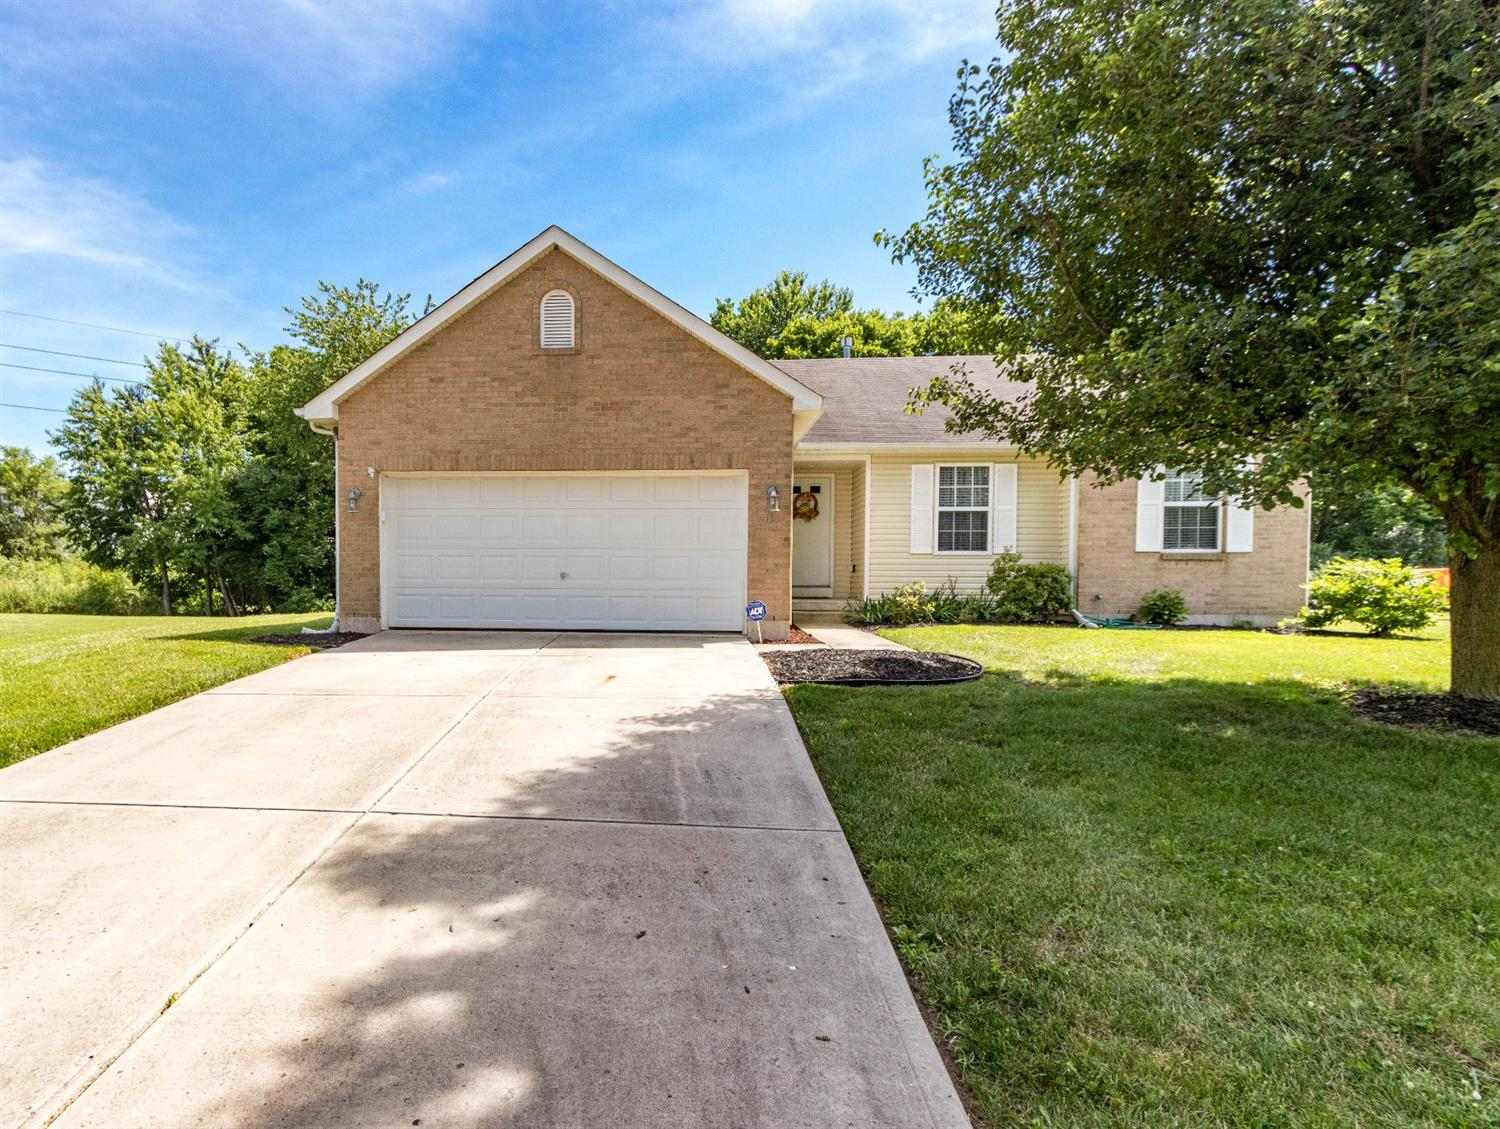 411 Red Tail Pl Trenton, OH